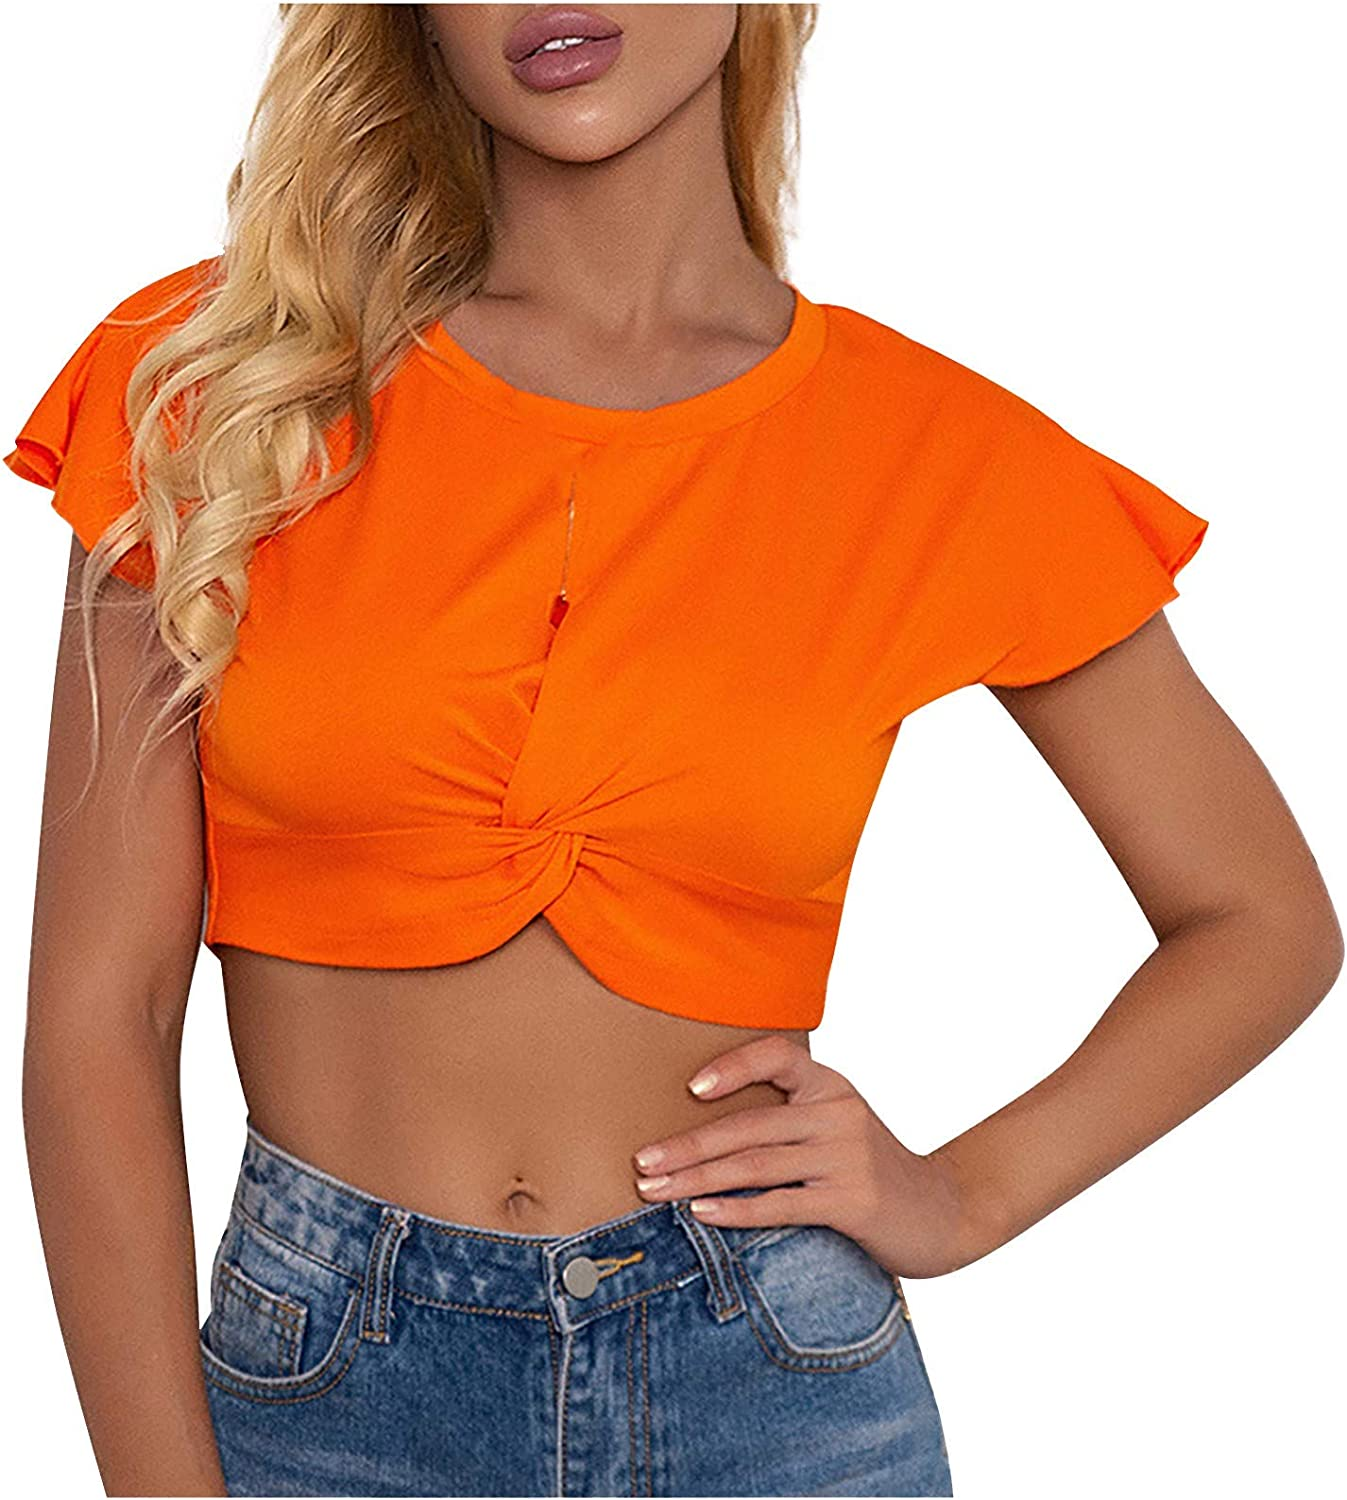 Women's Short Sleeve T-Shirt Sexy Short Umbilical Bow Crimping Round Neck T-Shirt Blouses Crop Tops